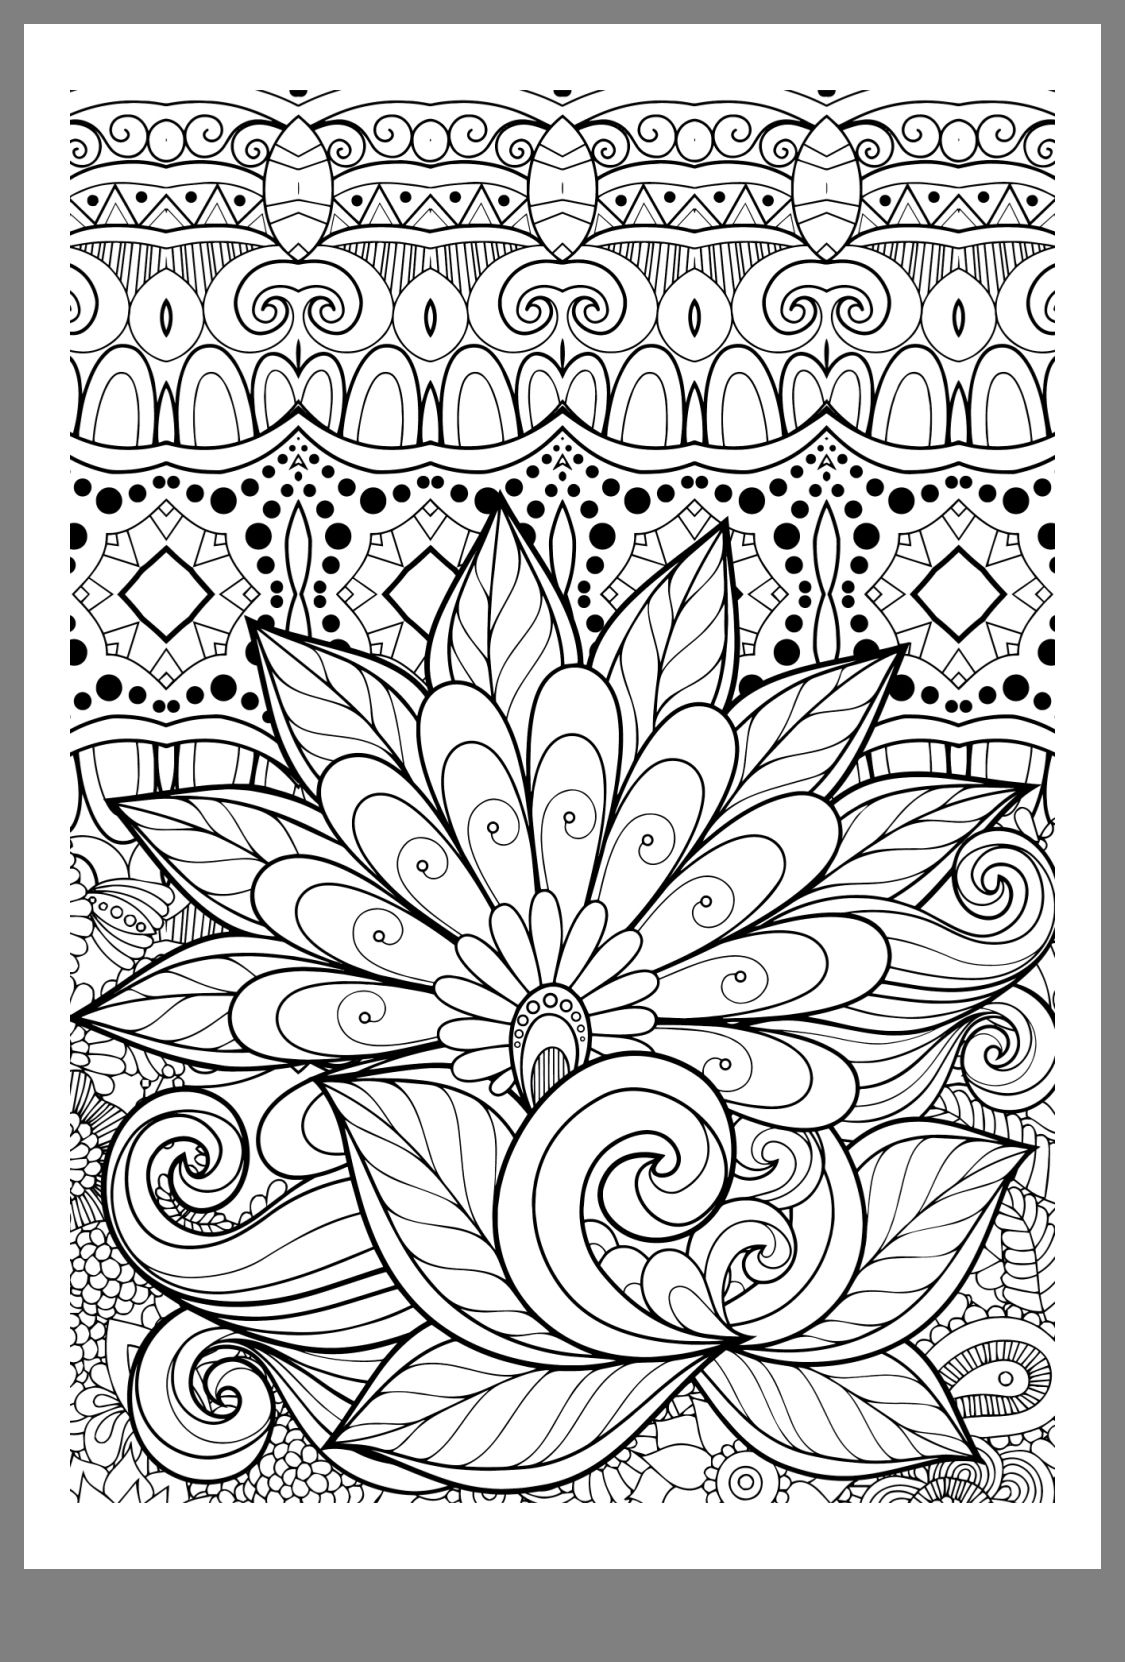 Pin By Ie E On Draws Pattern Coloring Pages Cute Coloring Pages Mandala Coloring